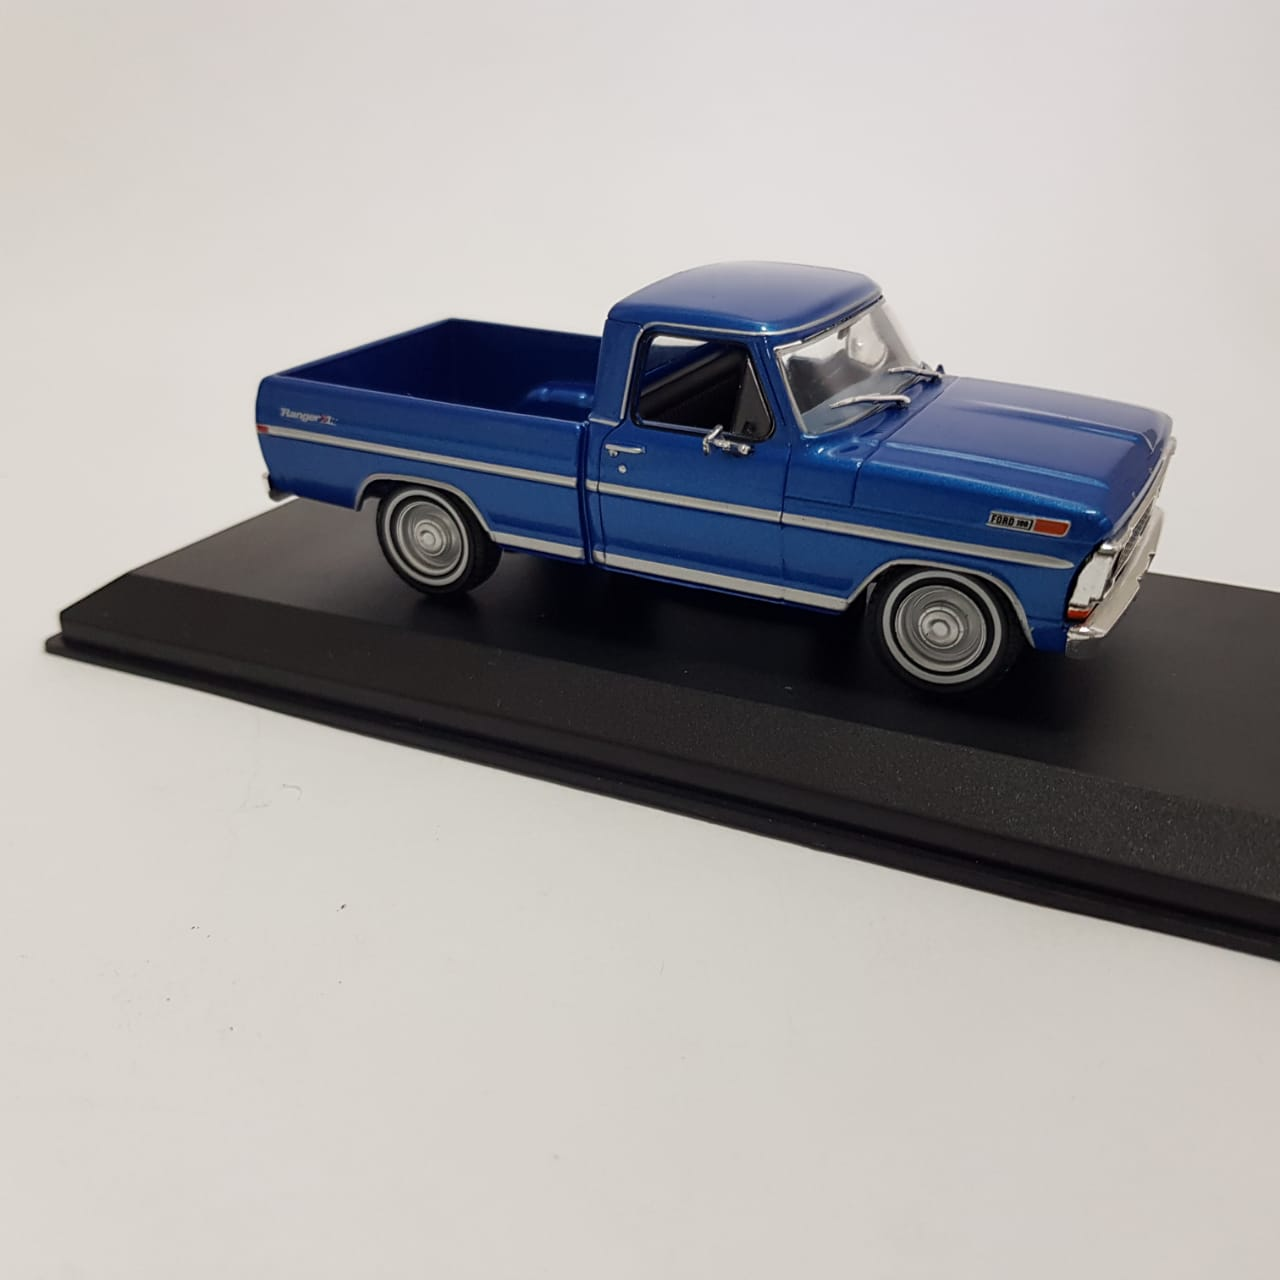 Miniatura Ford F-100 1970 Azul 1/43 Greenlight